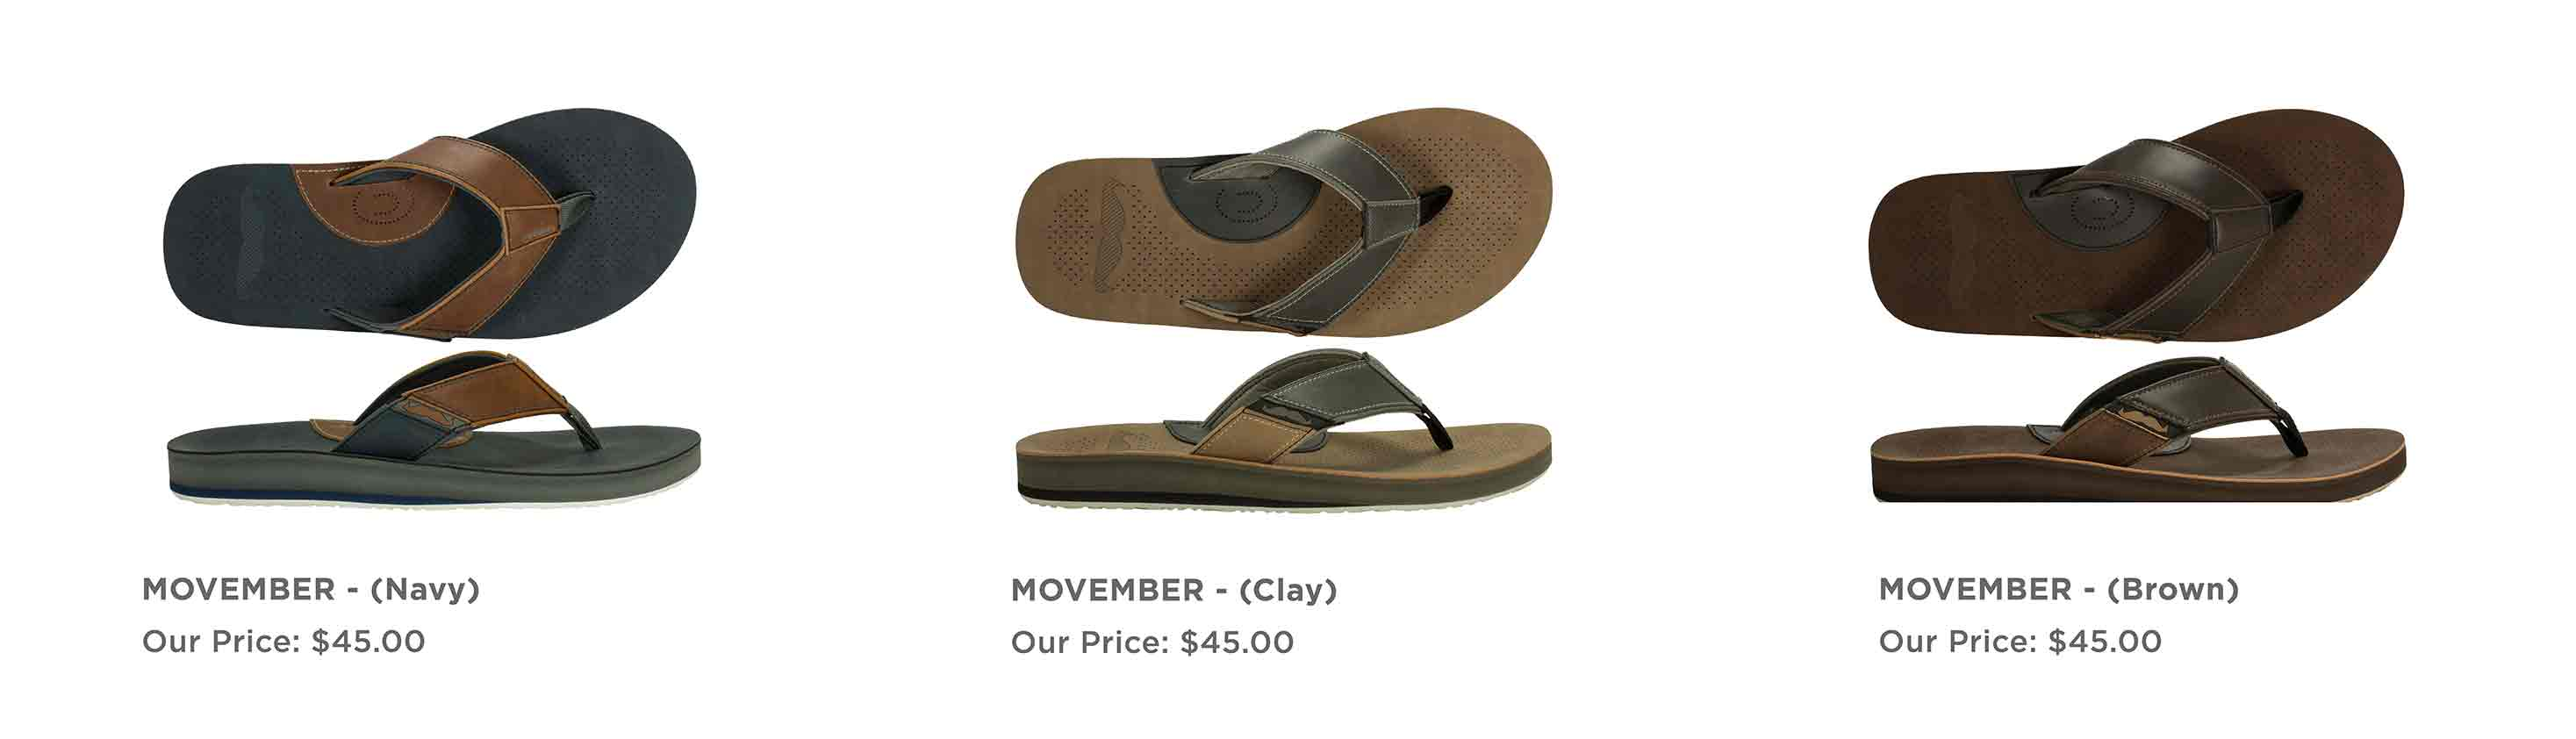 ad2a89c03171 50% of sales will be donated to the Movember Foundation.